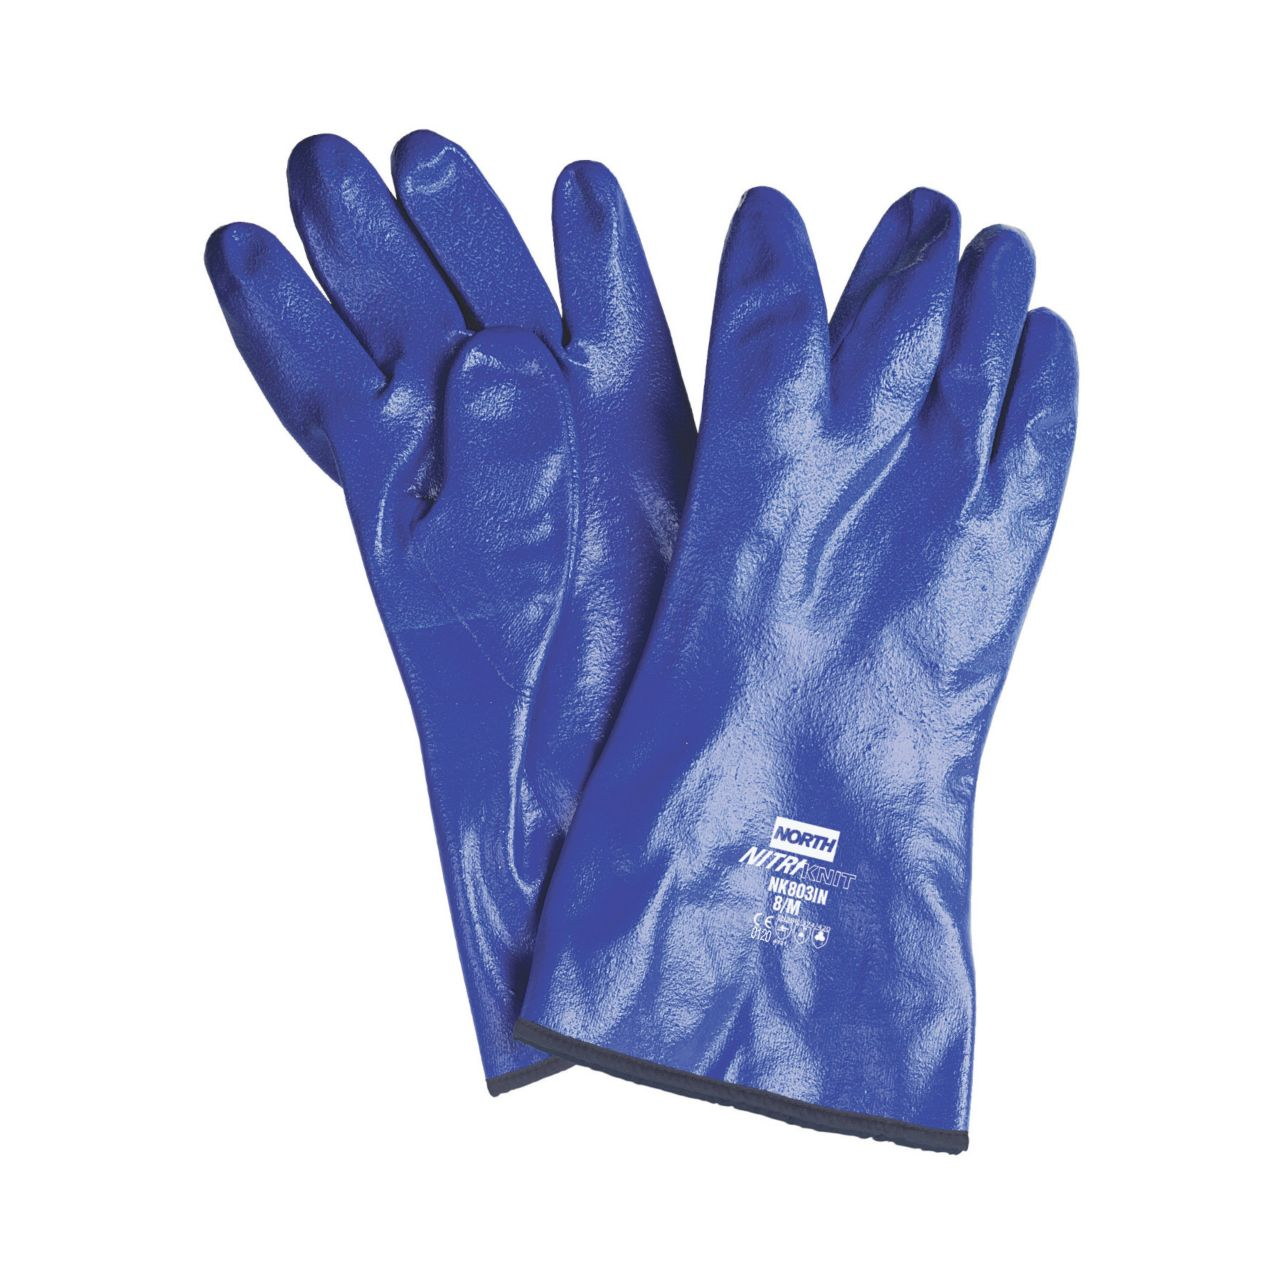 HS_nitri-knite284a2_-_supported_nitrile_gloves_-_nk803in_north_nk803in